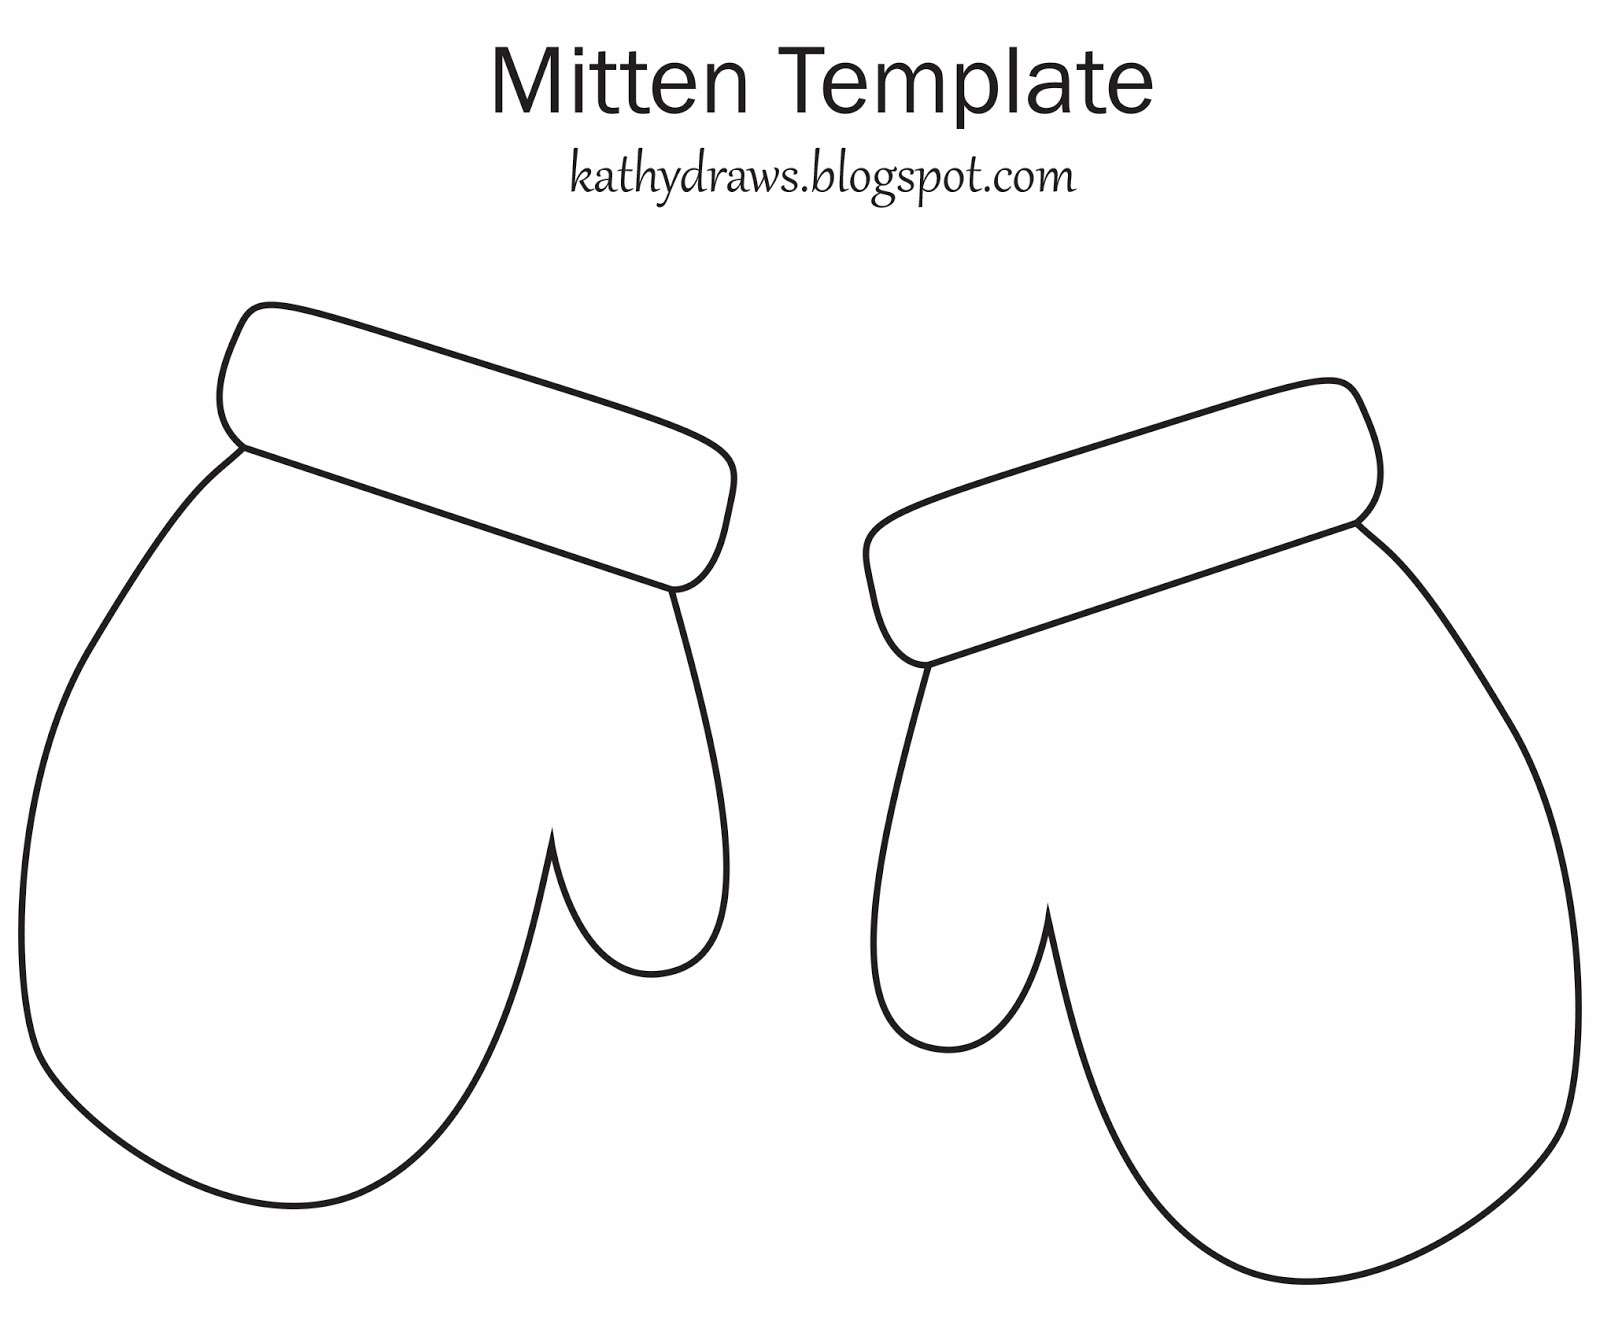 Mitten Outline Clipart - Clipart Suggest